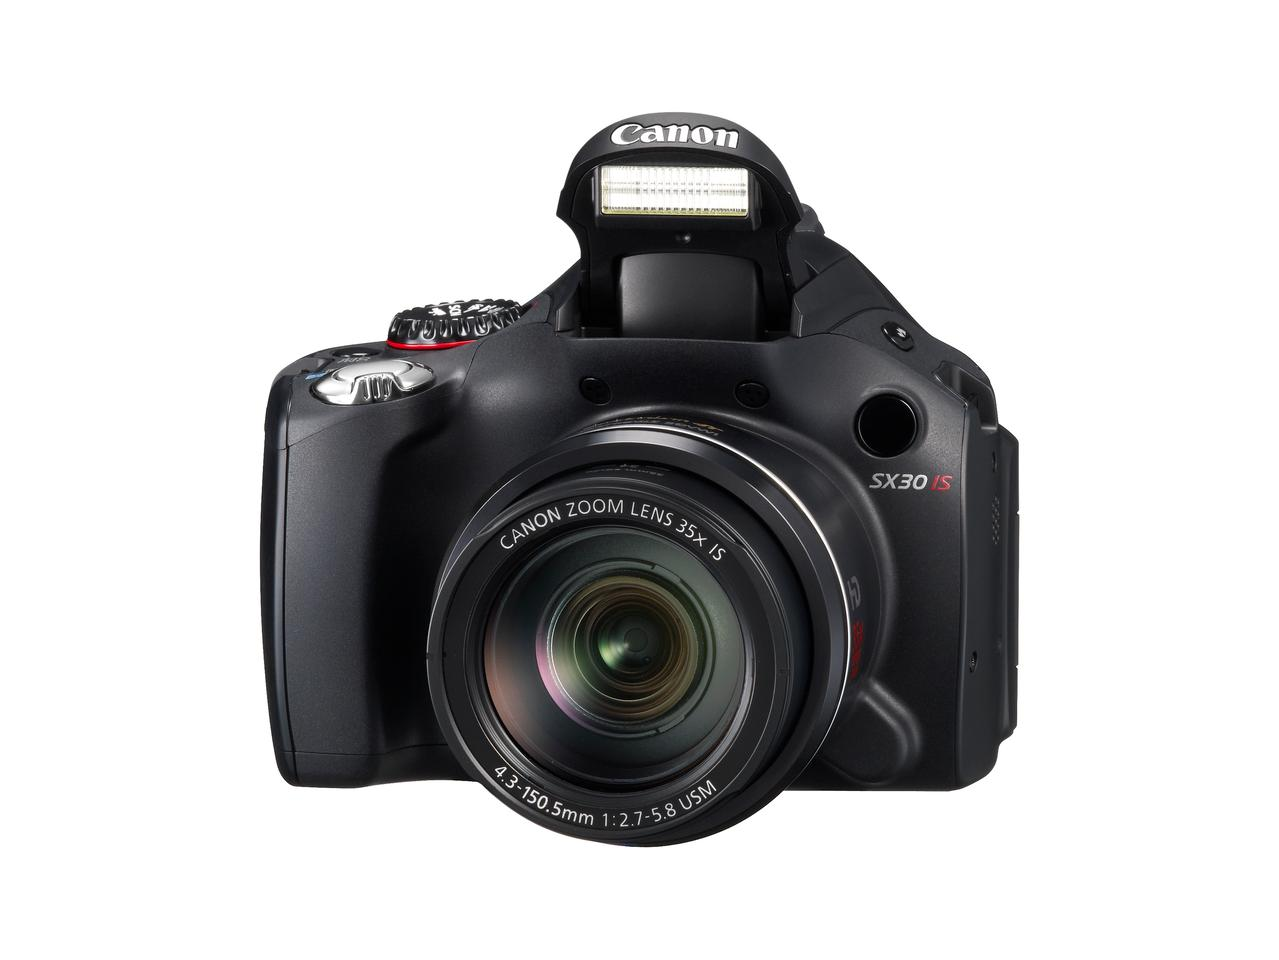 The PowerShot SX30 IS features a 35x-Wide Angle Optical Zoom lens with Optical Image Stabilization